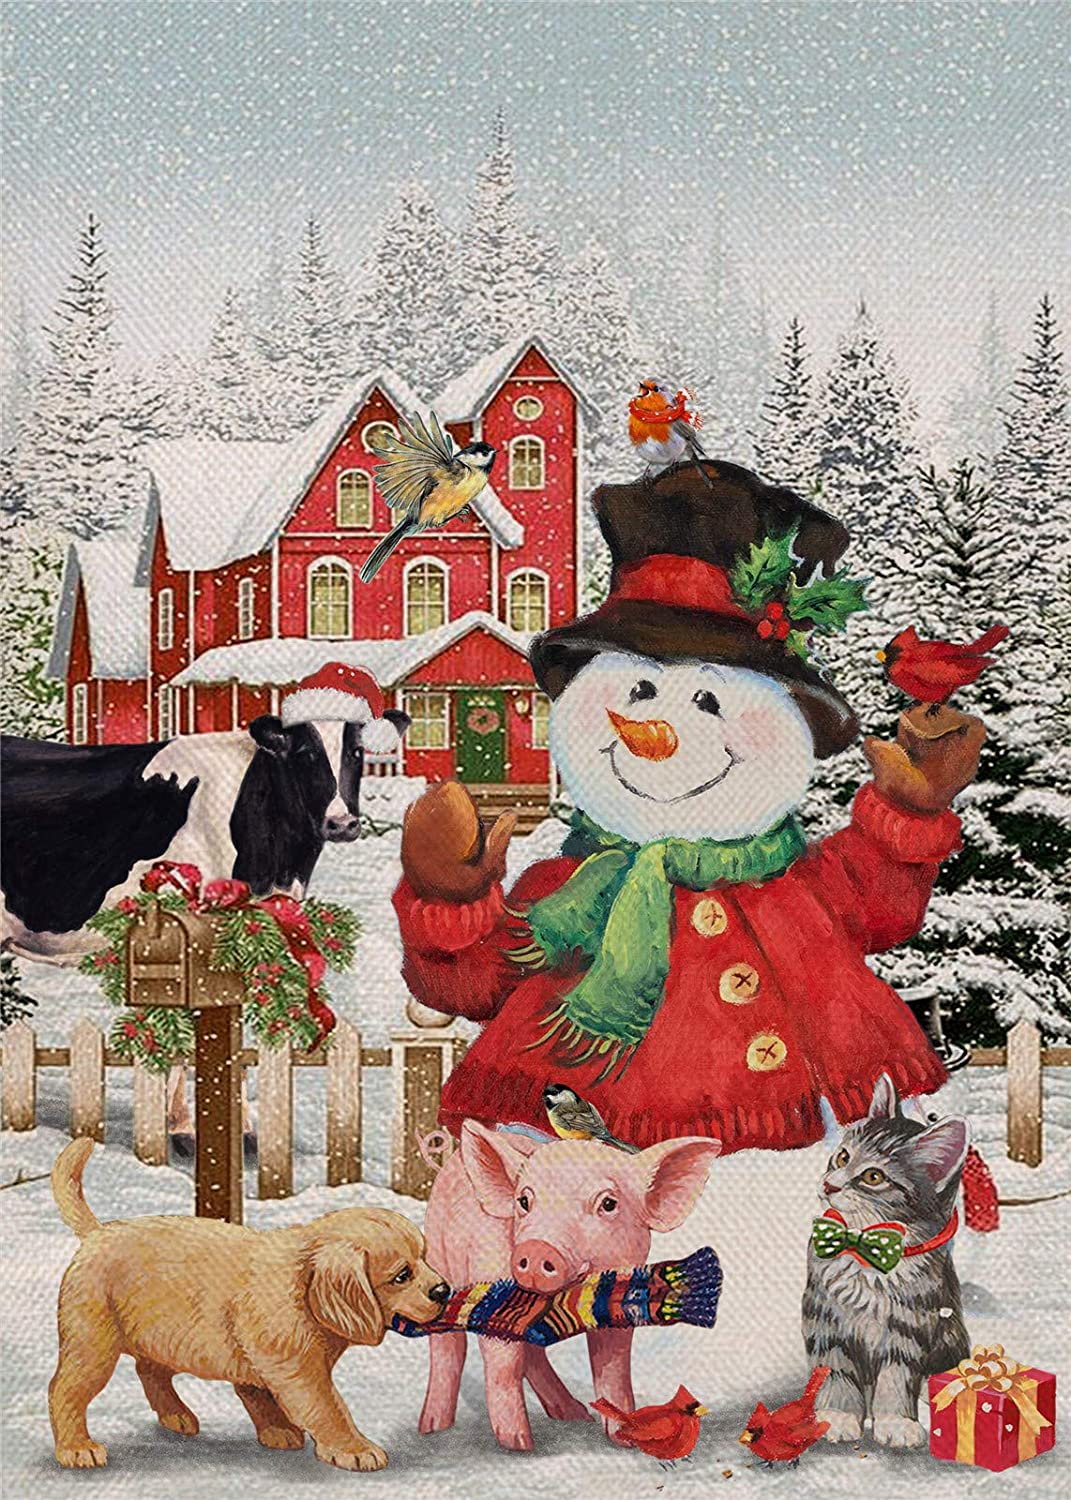 Furiaz Home Decorative Winter Garden Flag Christmas Snowman House Yard Outside Small Flag Xmas Cardinal Bird Dog Cat Cow Pig Decor Flag Double Sided, Holiday Country Farmhouse Outdoor Decoration 12x18